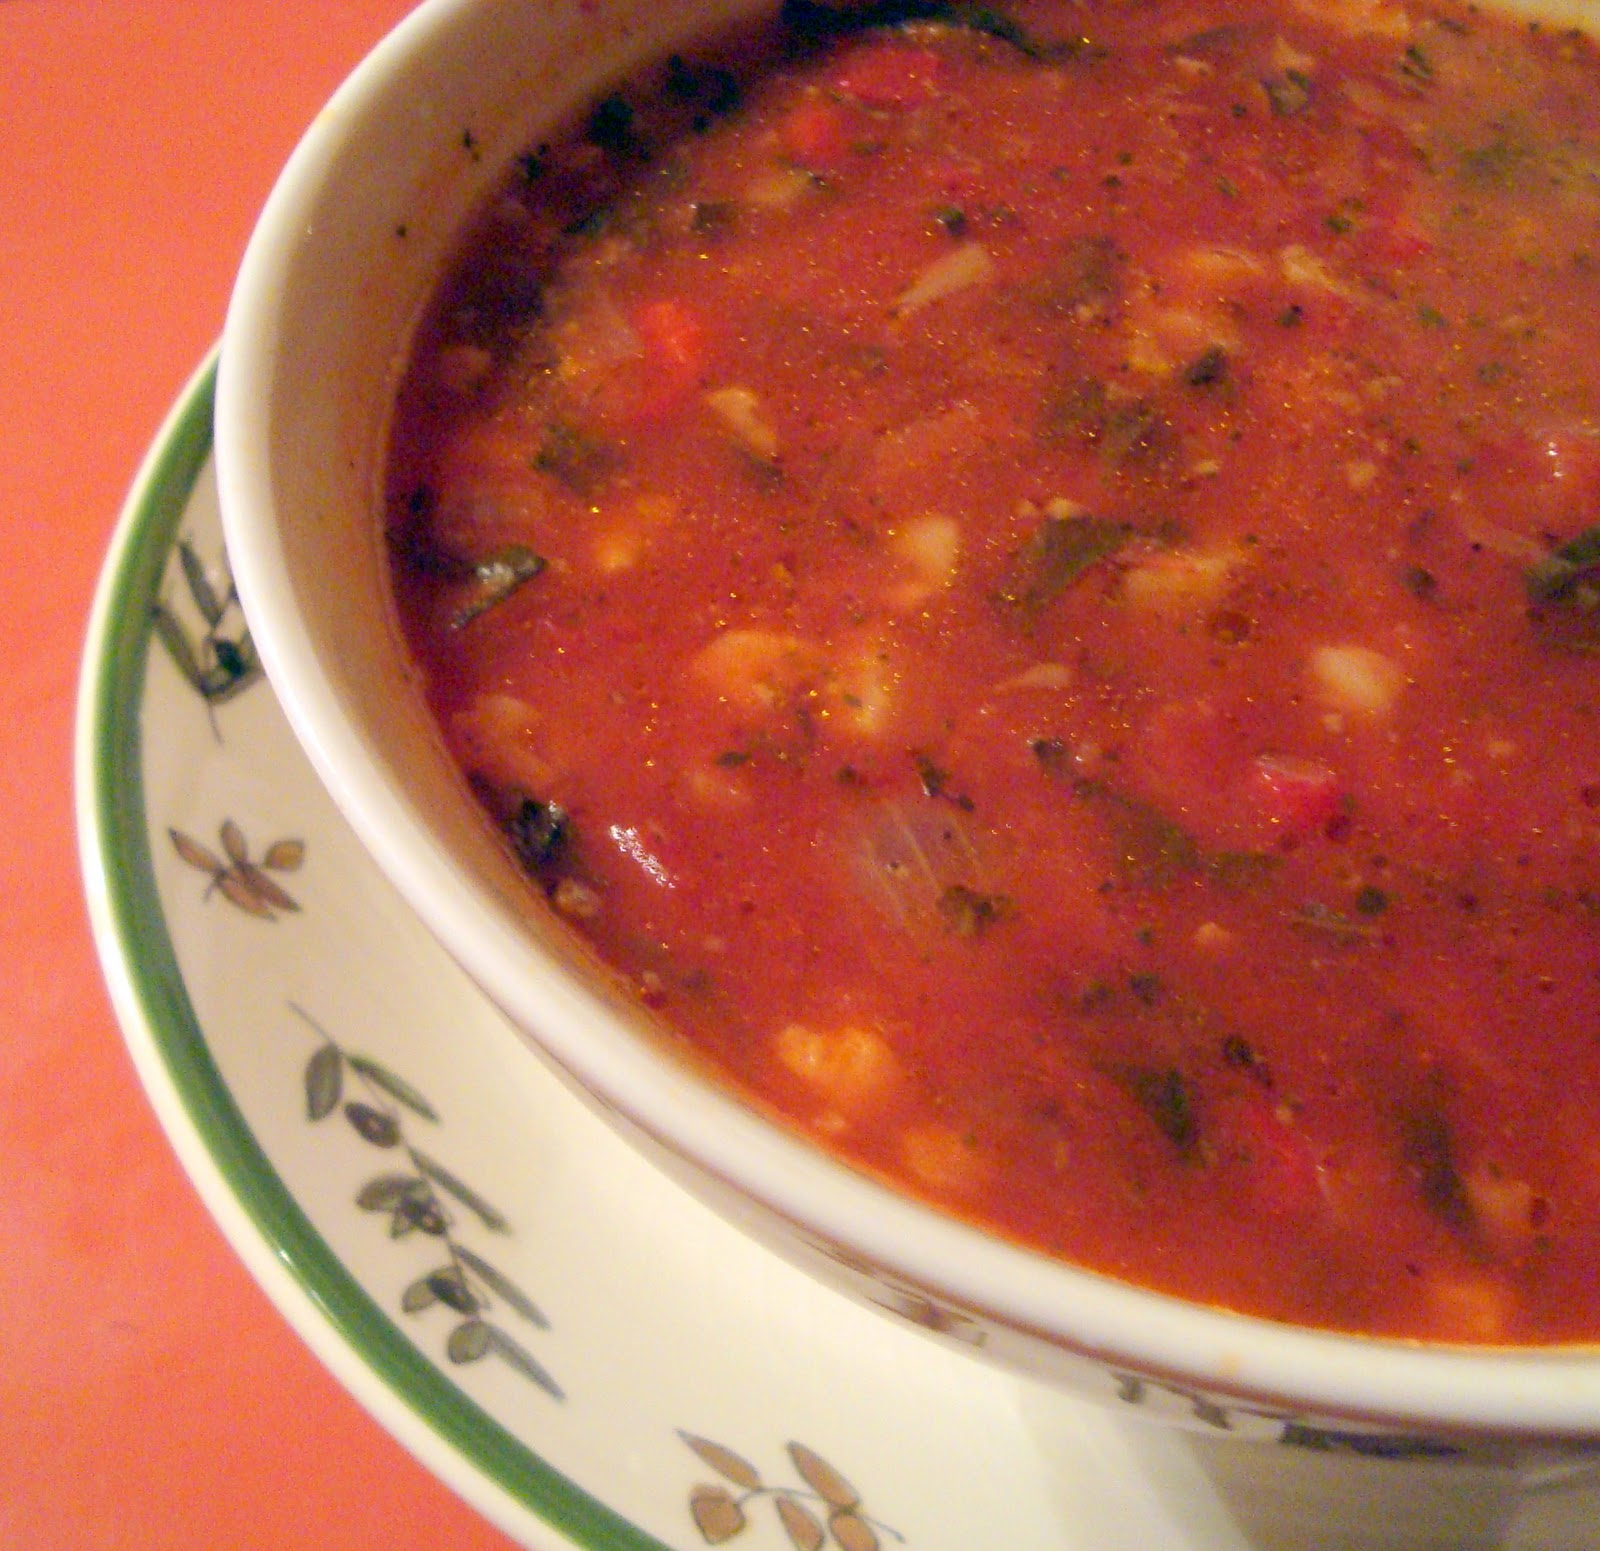 Meatless Monday Takeout: Garden Vegetable Soup With Pesto From Panera